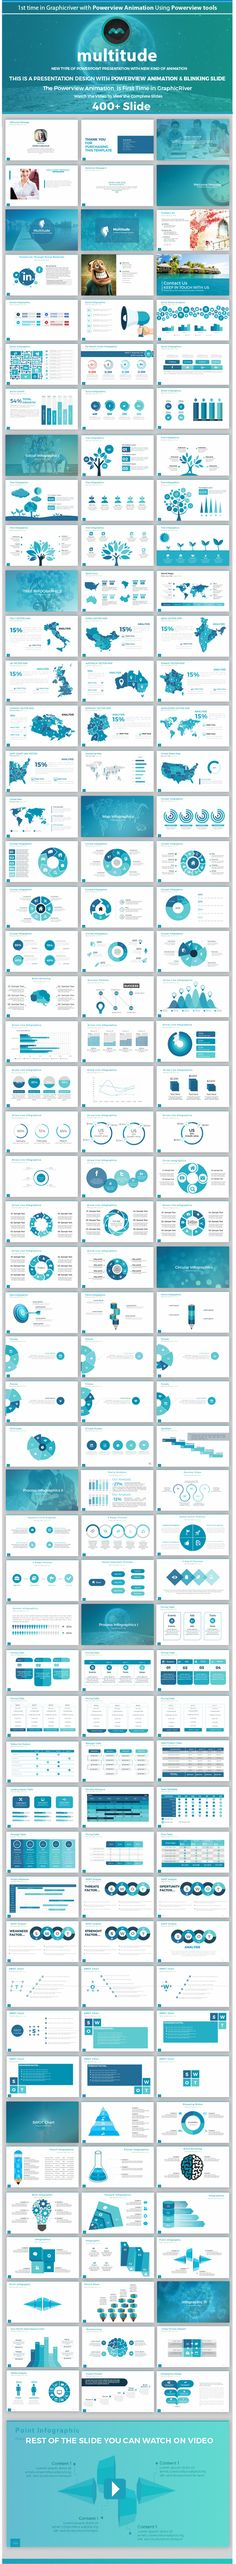 Multitude Multipurose Powerpoint Template With Powerview Animation. Download here: http://graphicriver.net/item/multitude-multipurose-powerpoint-template-with-powerview-animation/16487160?ref=ksioks